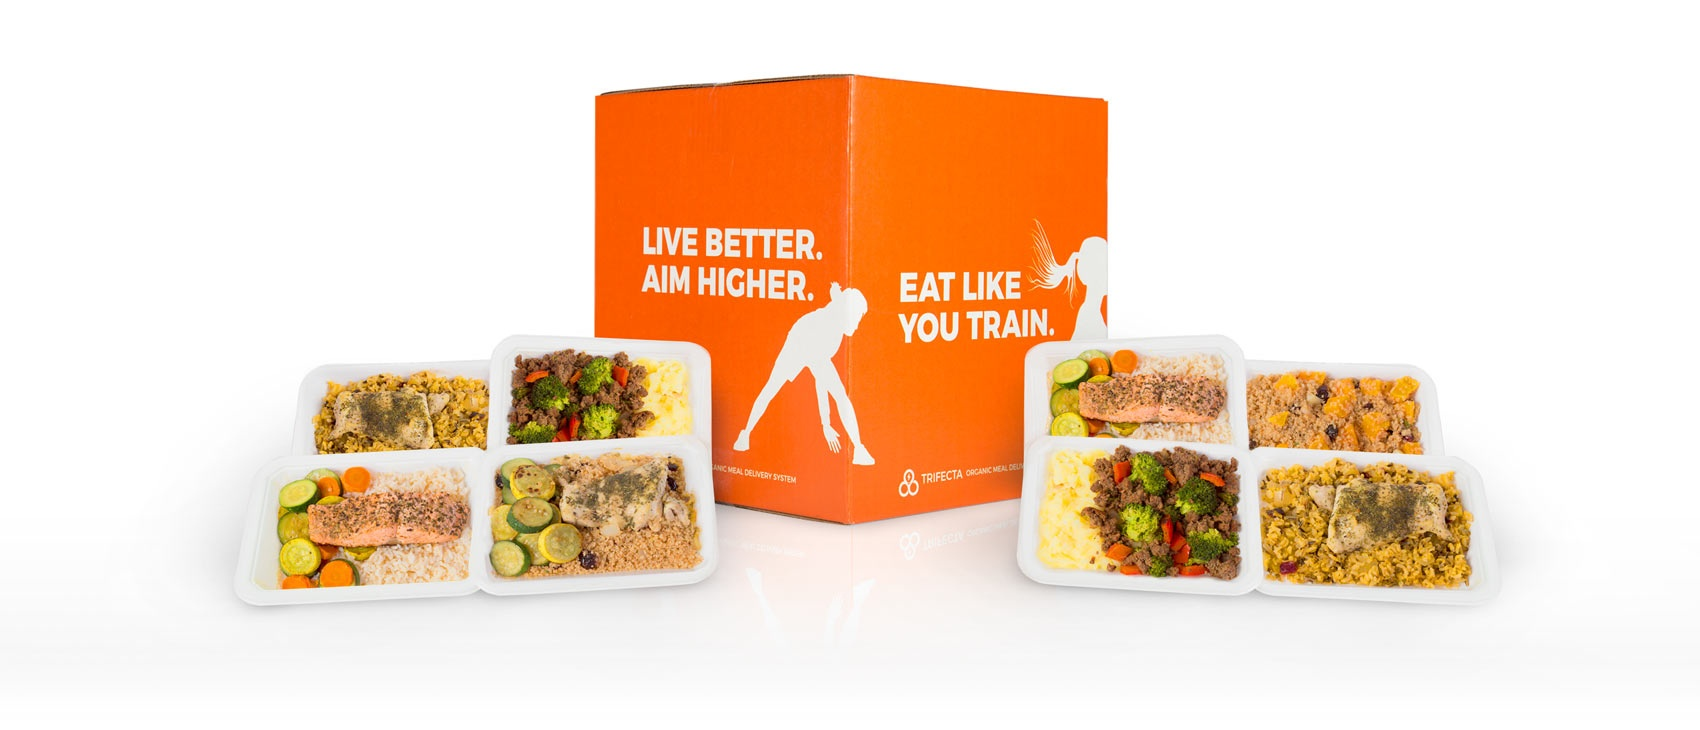 How_it_works_trifecta_organic_meal_delivery_meals_and_Box